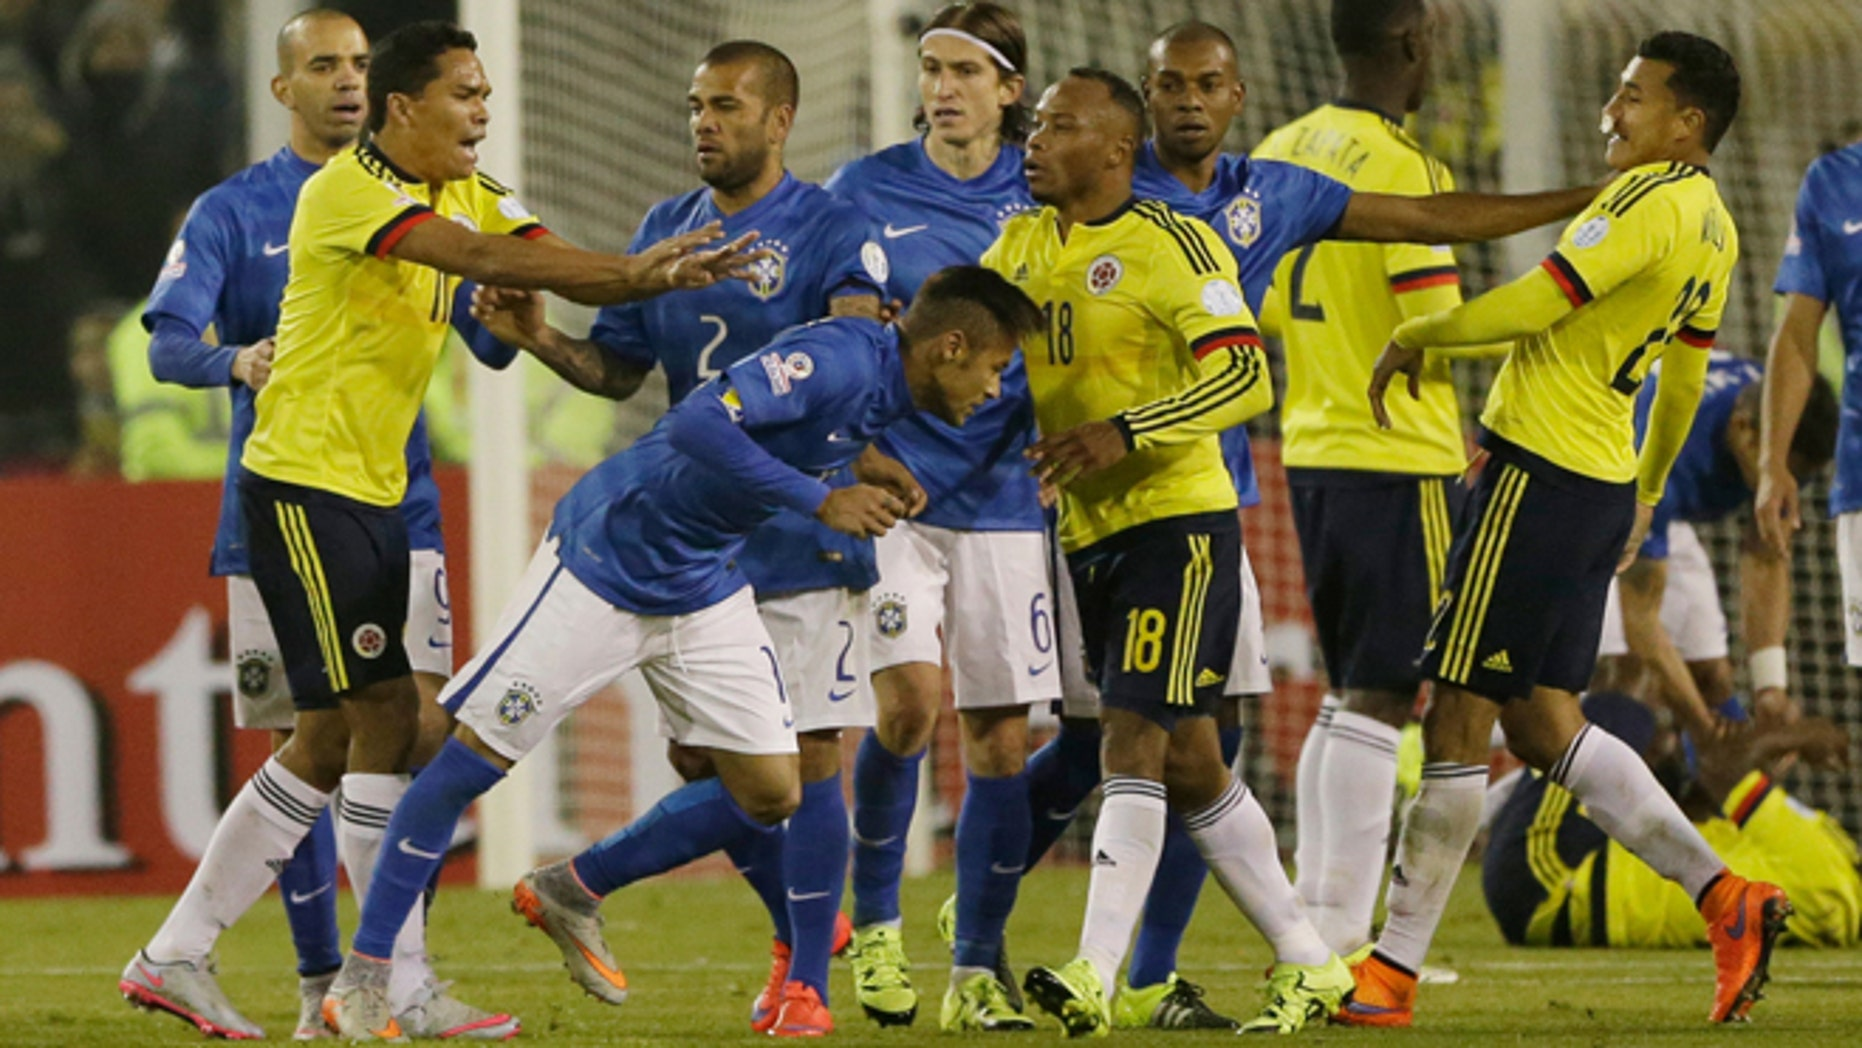 Colombia's Carlos Bacca, second left, pushes Brazil's Neymar, center right, at the end of the Copa America Group C soccer match at the Monumental stadium in Santiago, Chile, Wednesday, June 17, 2015. Colombia  won the match 1-0 and Bacca and Neymar where both sent off with a red card at the end of the match. (AP Photo/Ricardo Mazalan)